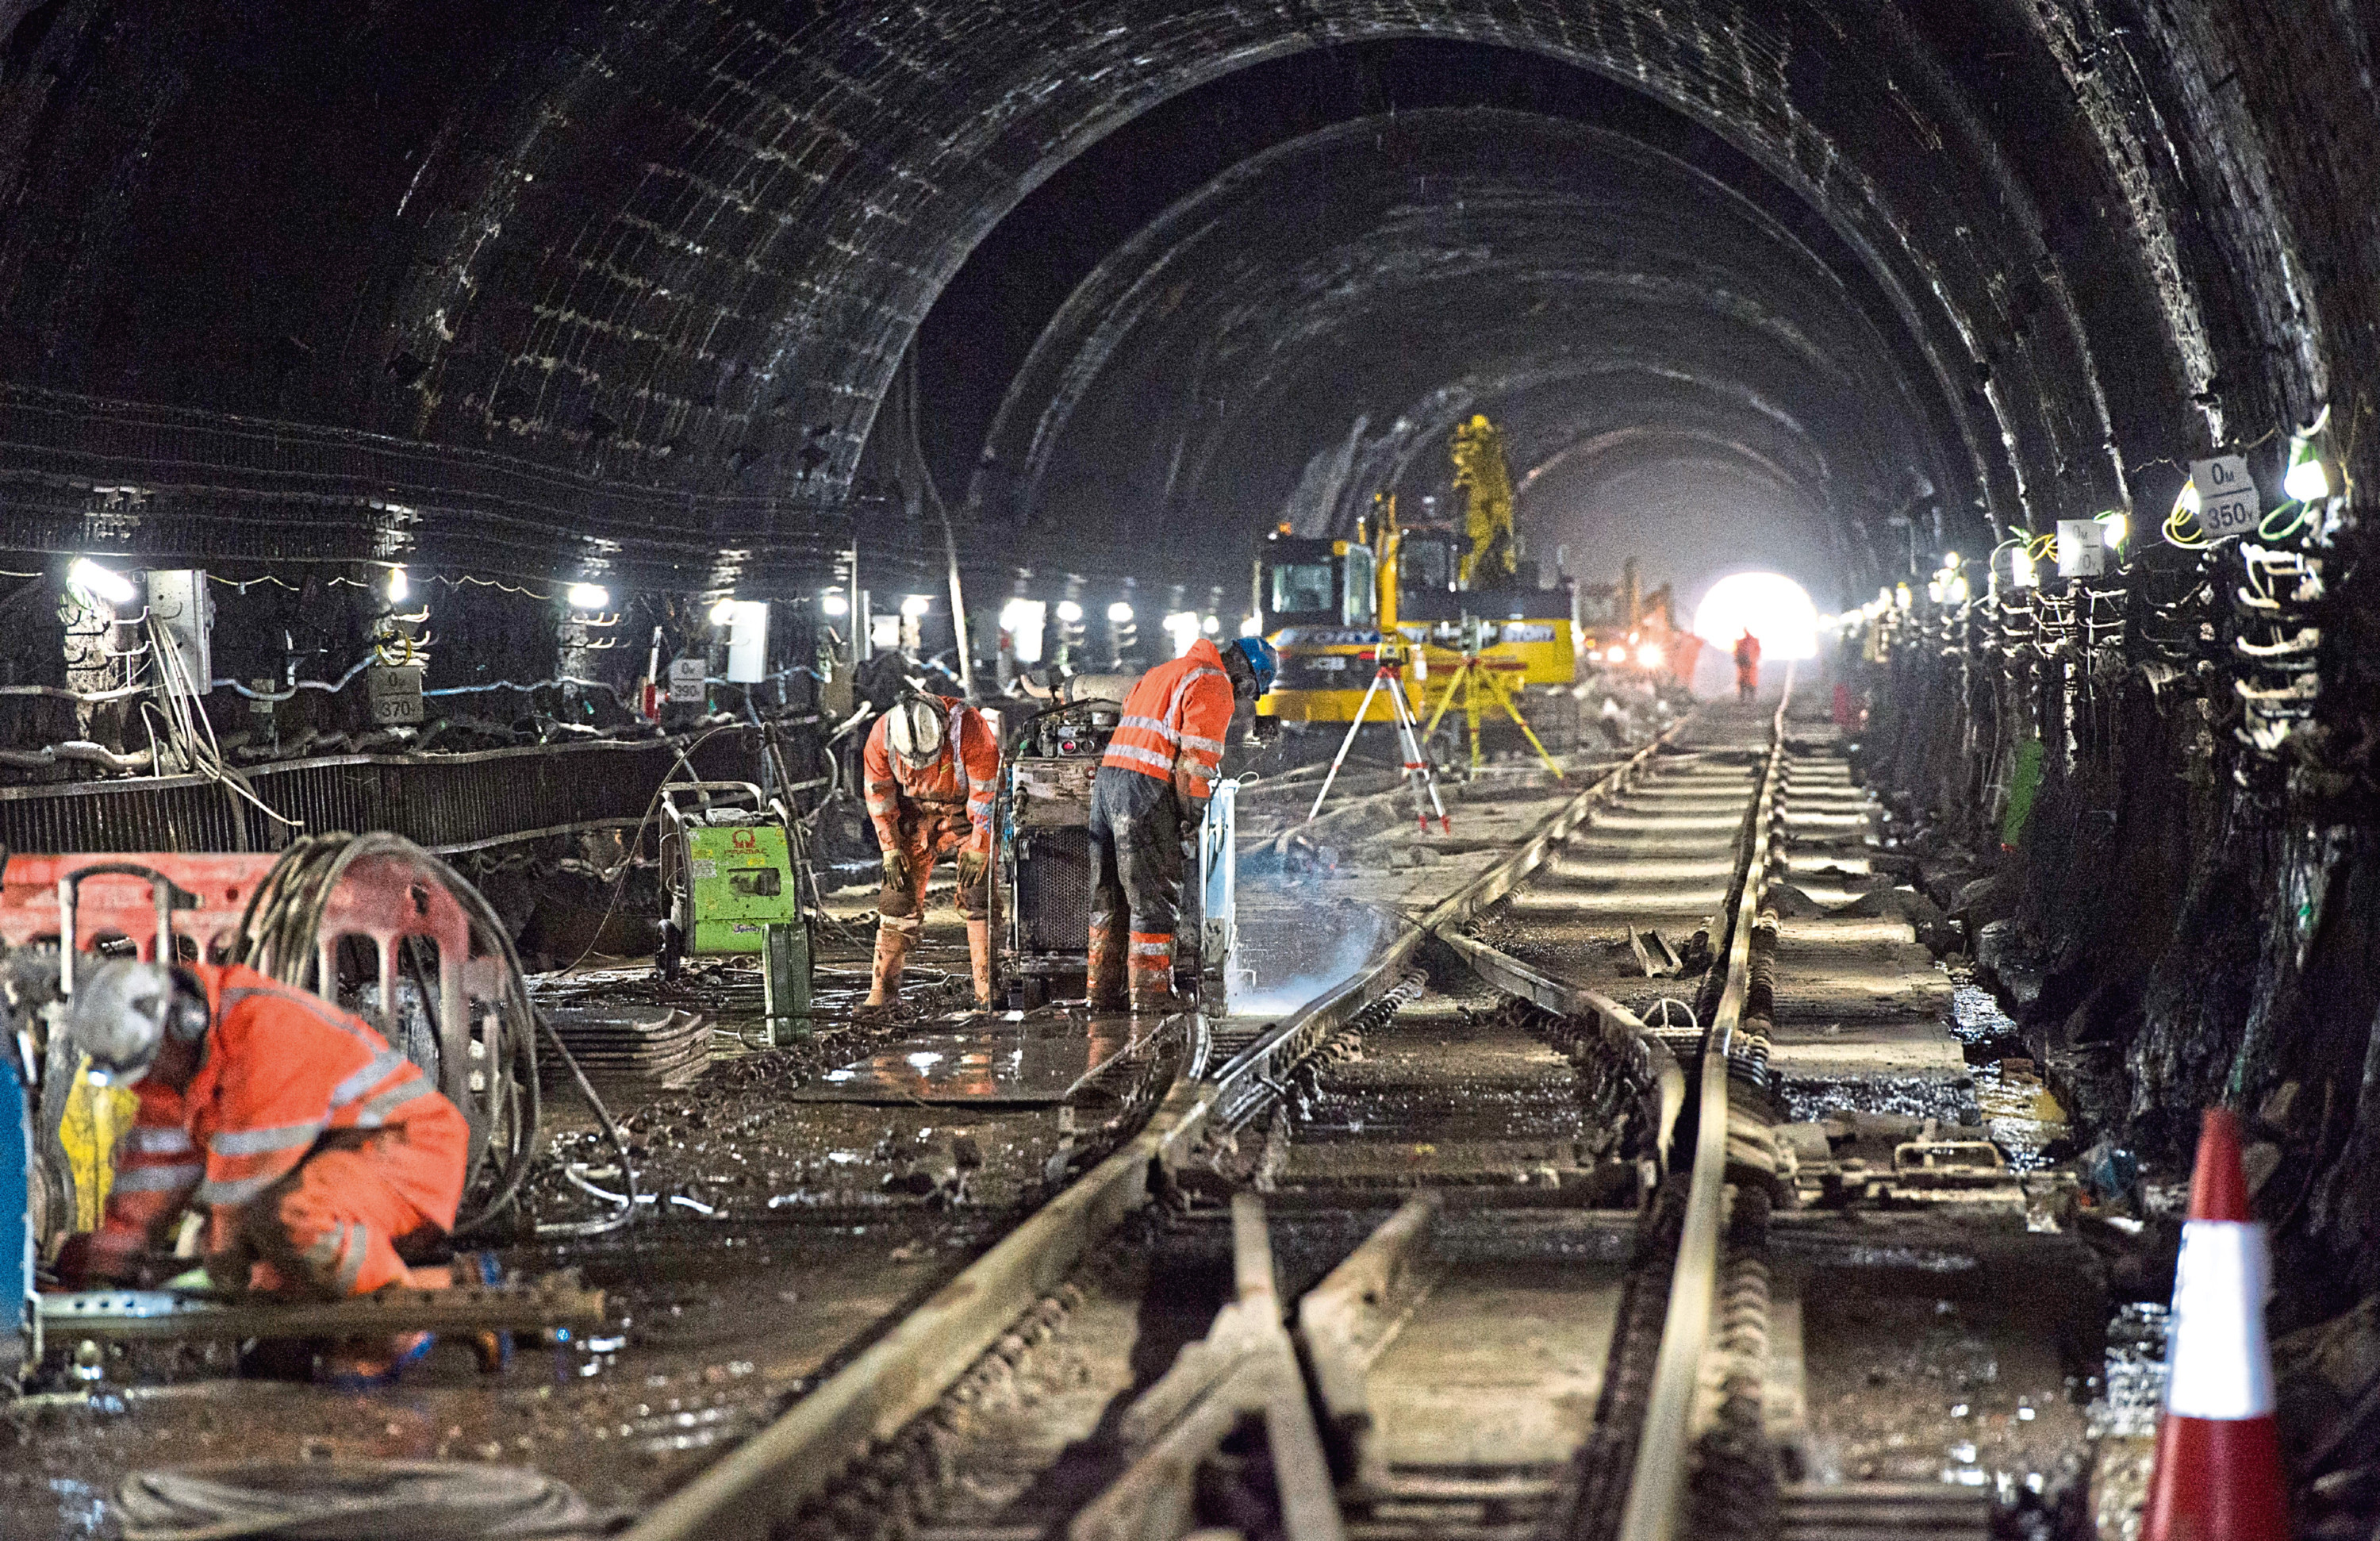 The electrification of the line has gone over budget and overrun, much to the concern of the rail regulator